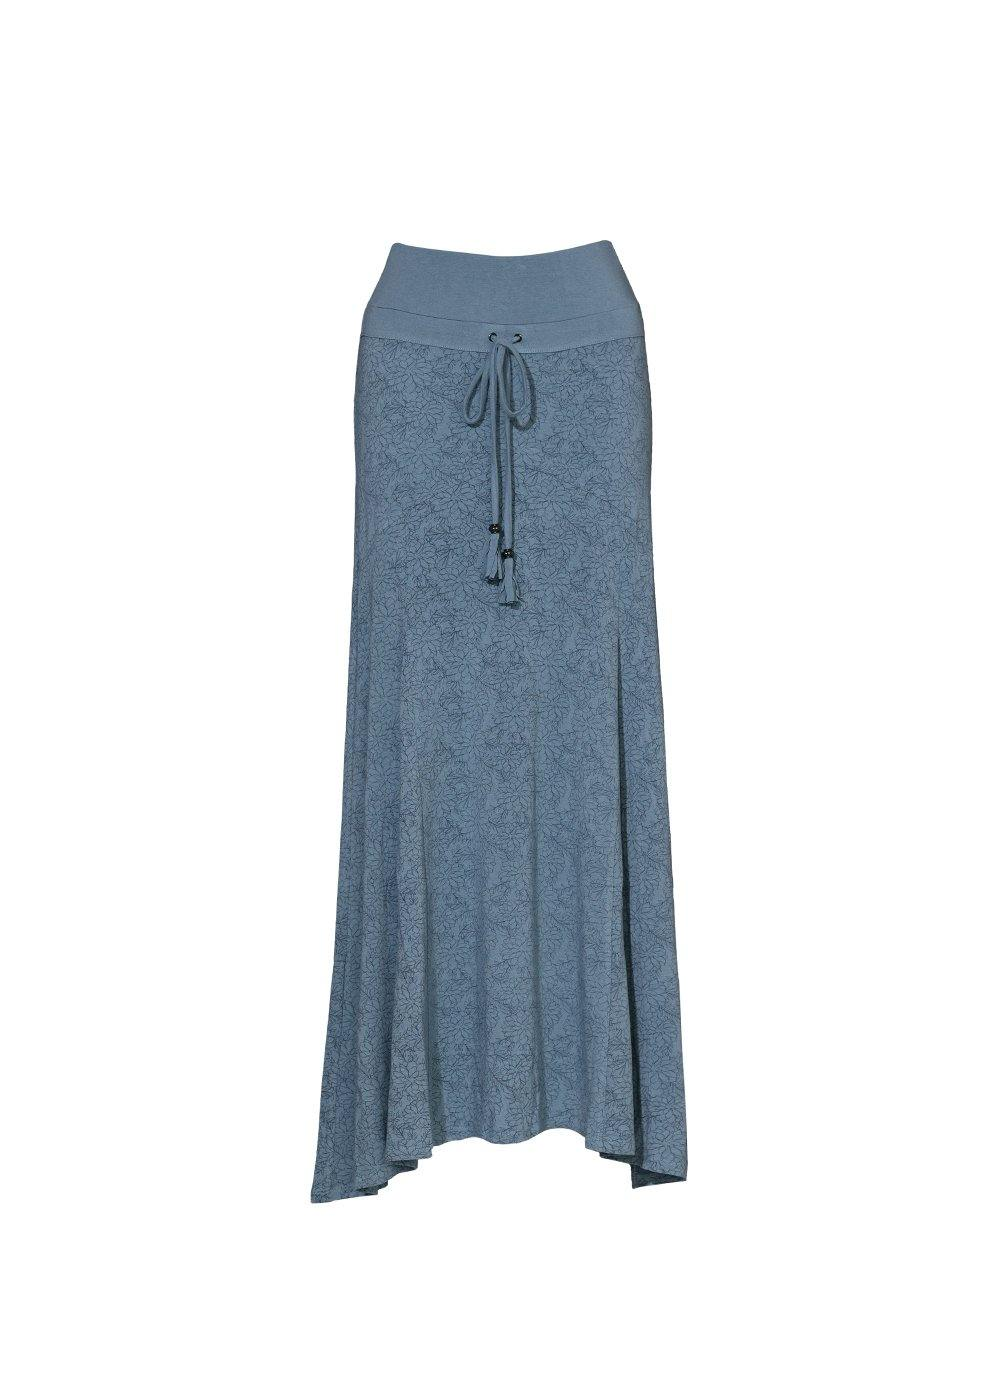 Nomads Hempwear Wildflower Skirt - Tantrika Clothing